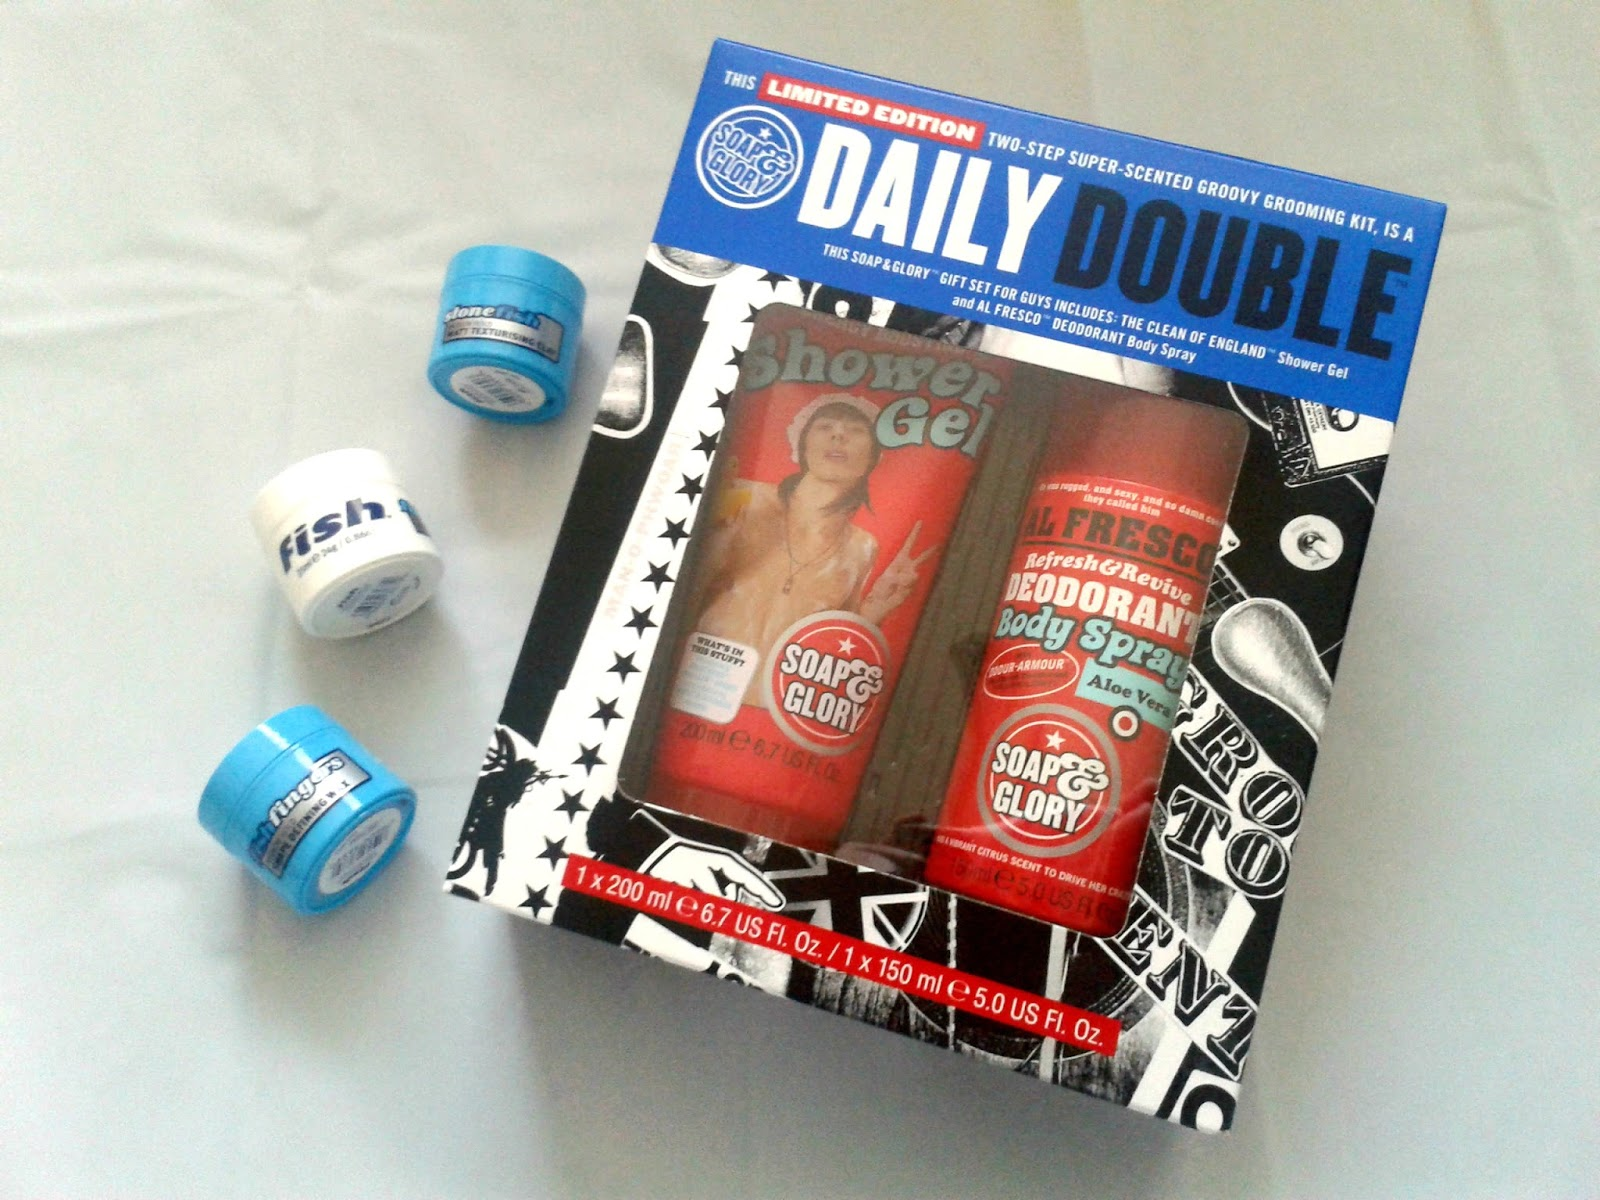 Soap & Glory DAILY DOUBLE™ Gift Set Fish Stonefish Matt Texturising Clay Fish Fishshape Texturising Cream Fish Fishfingers Shape Defining Wax